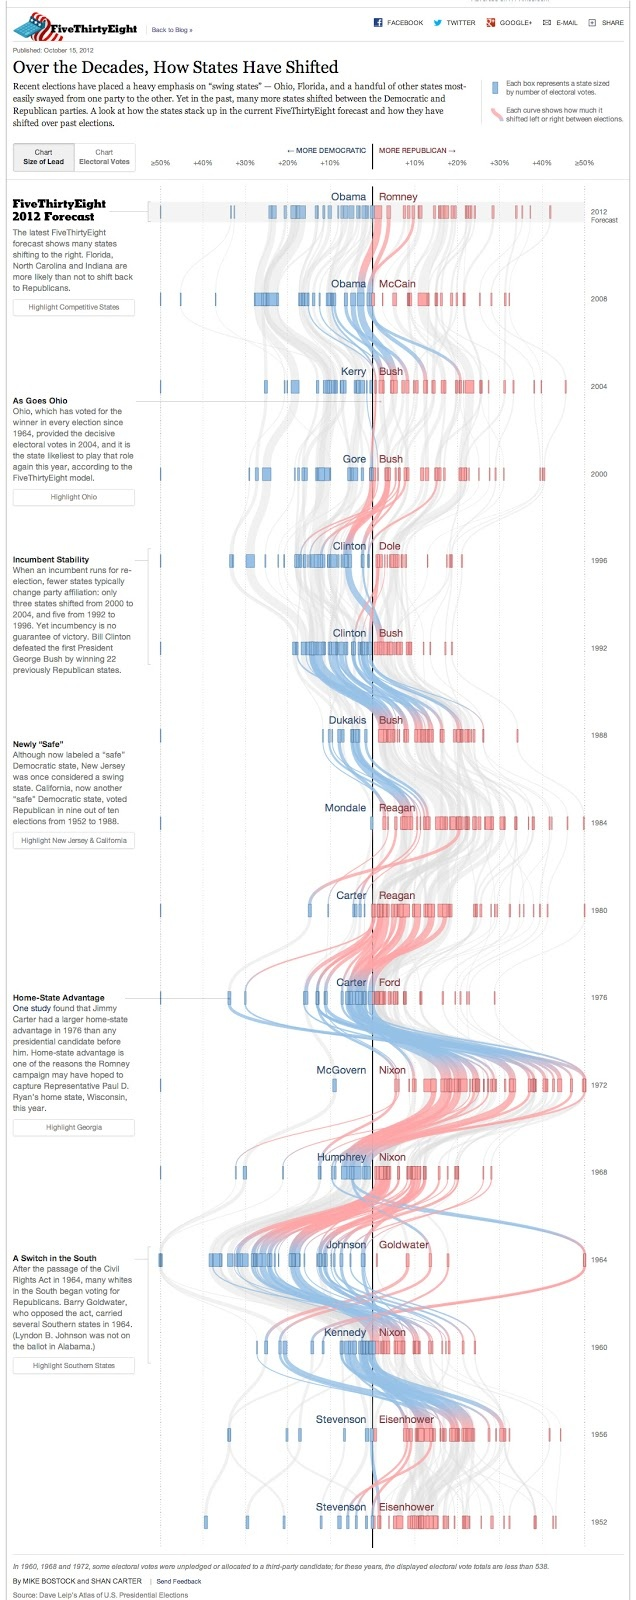 The Functional Art: An Introduction to Information Graphics and Visualization: Visualizing political shifts: Data and interaction design